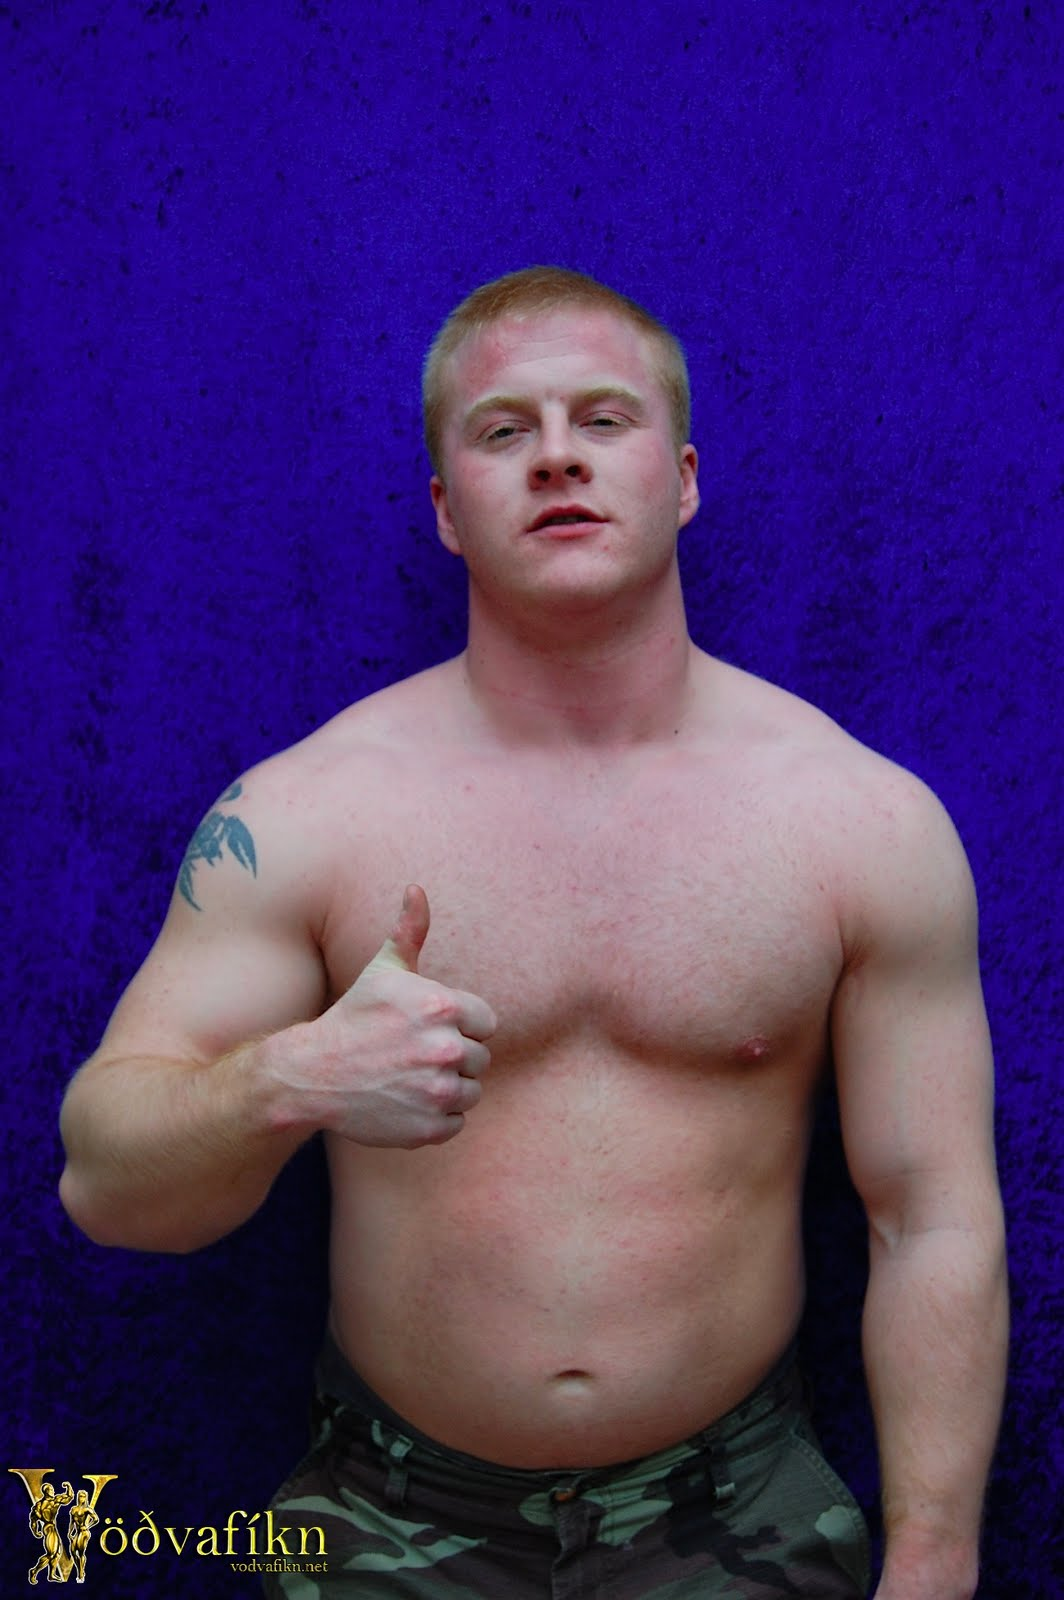 Red Headed Men: German Ginger Hunk